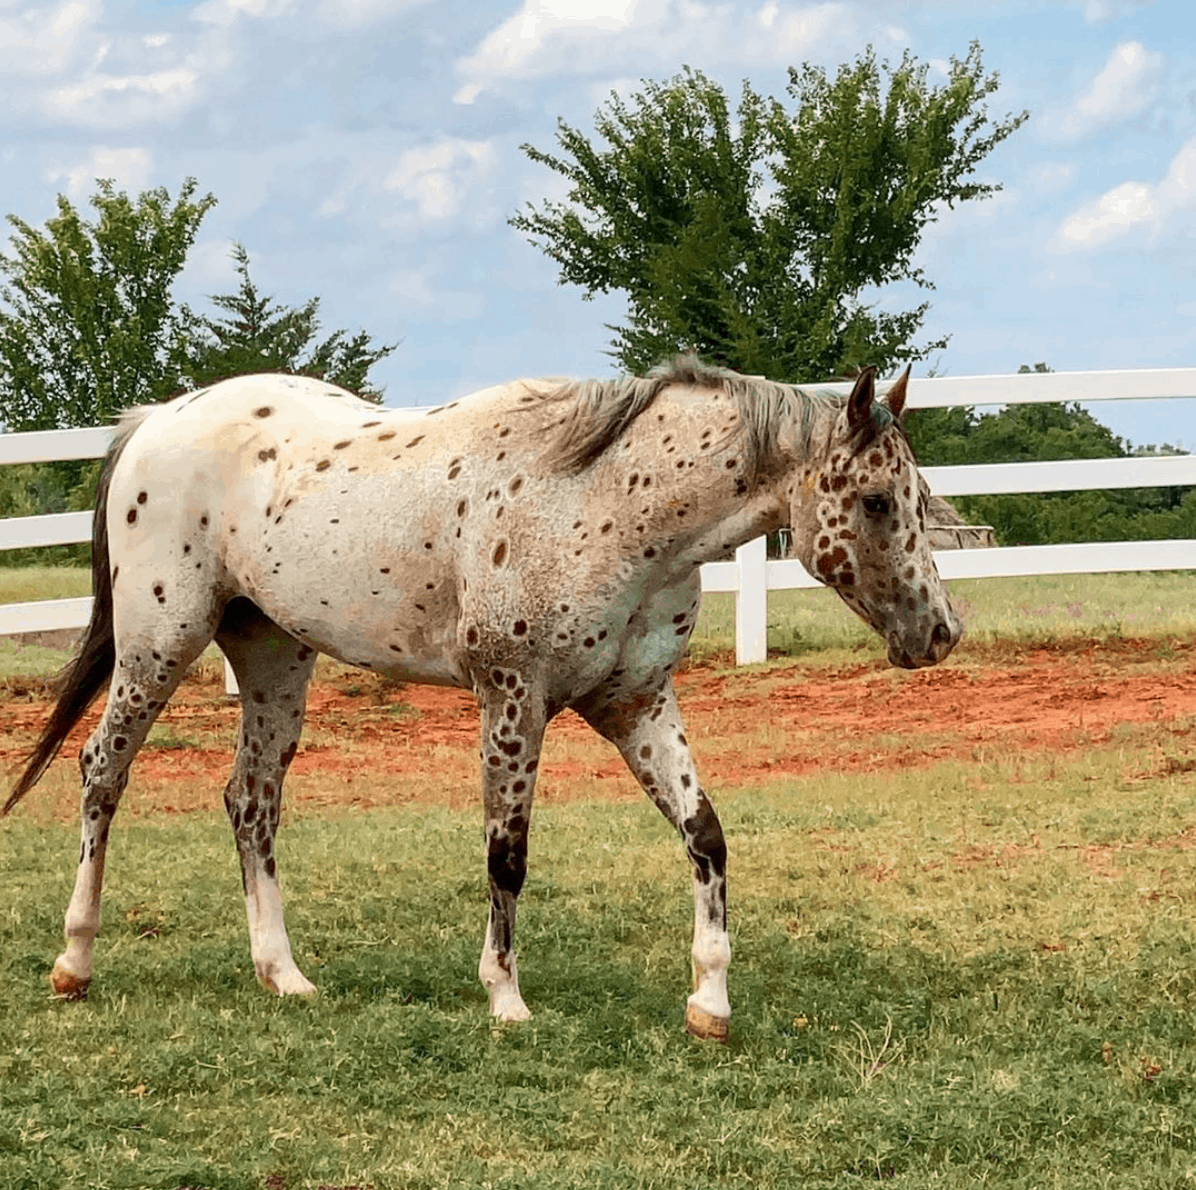 Tattoo the Appaloosa